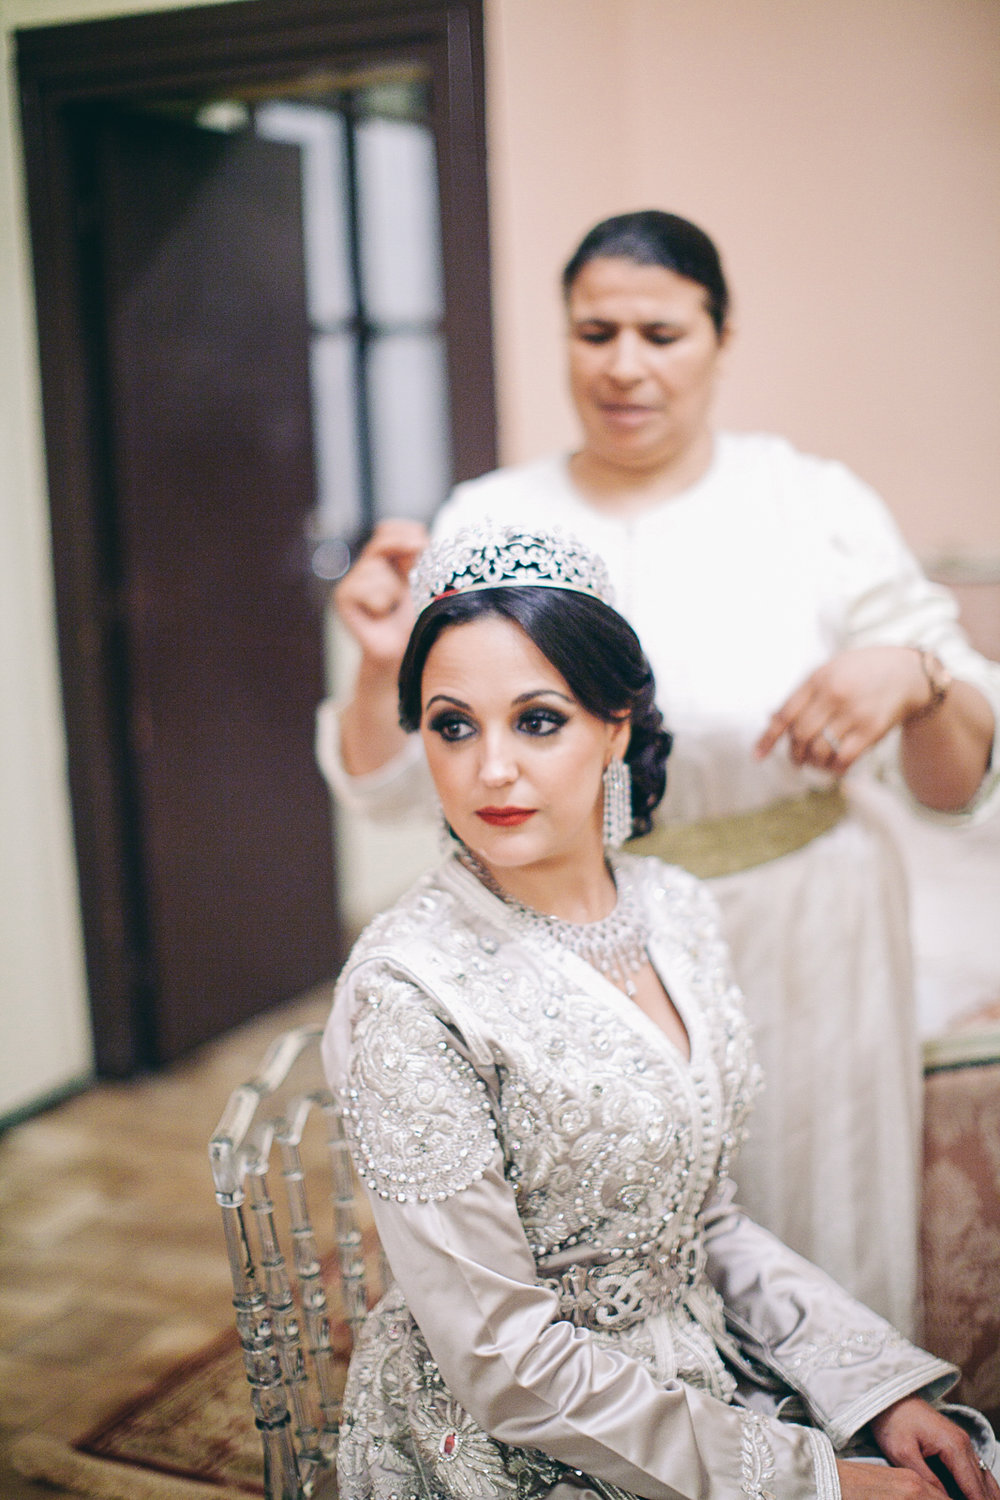 traditional_moroccan_wedding_photographry_casablanca_morocco_houda_vivek_ebony_siovhan_bokeh_photography_045.jpg